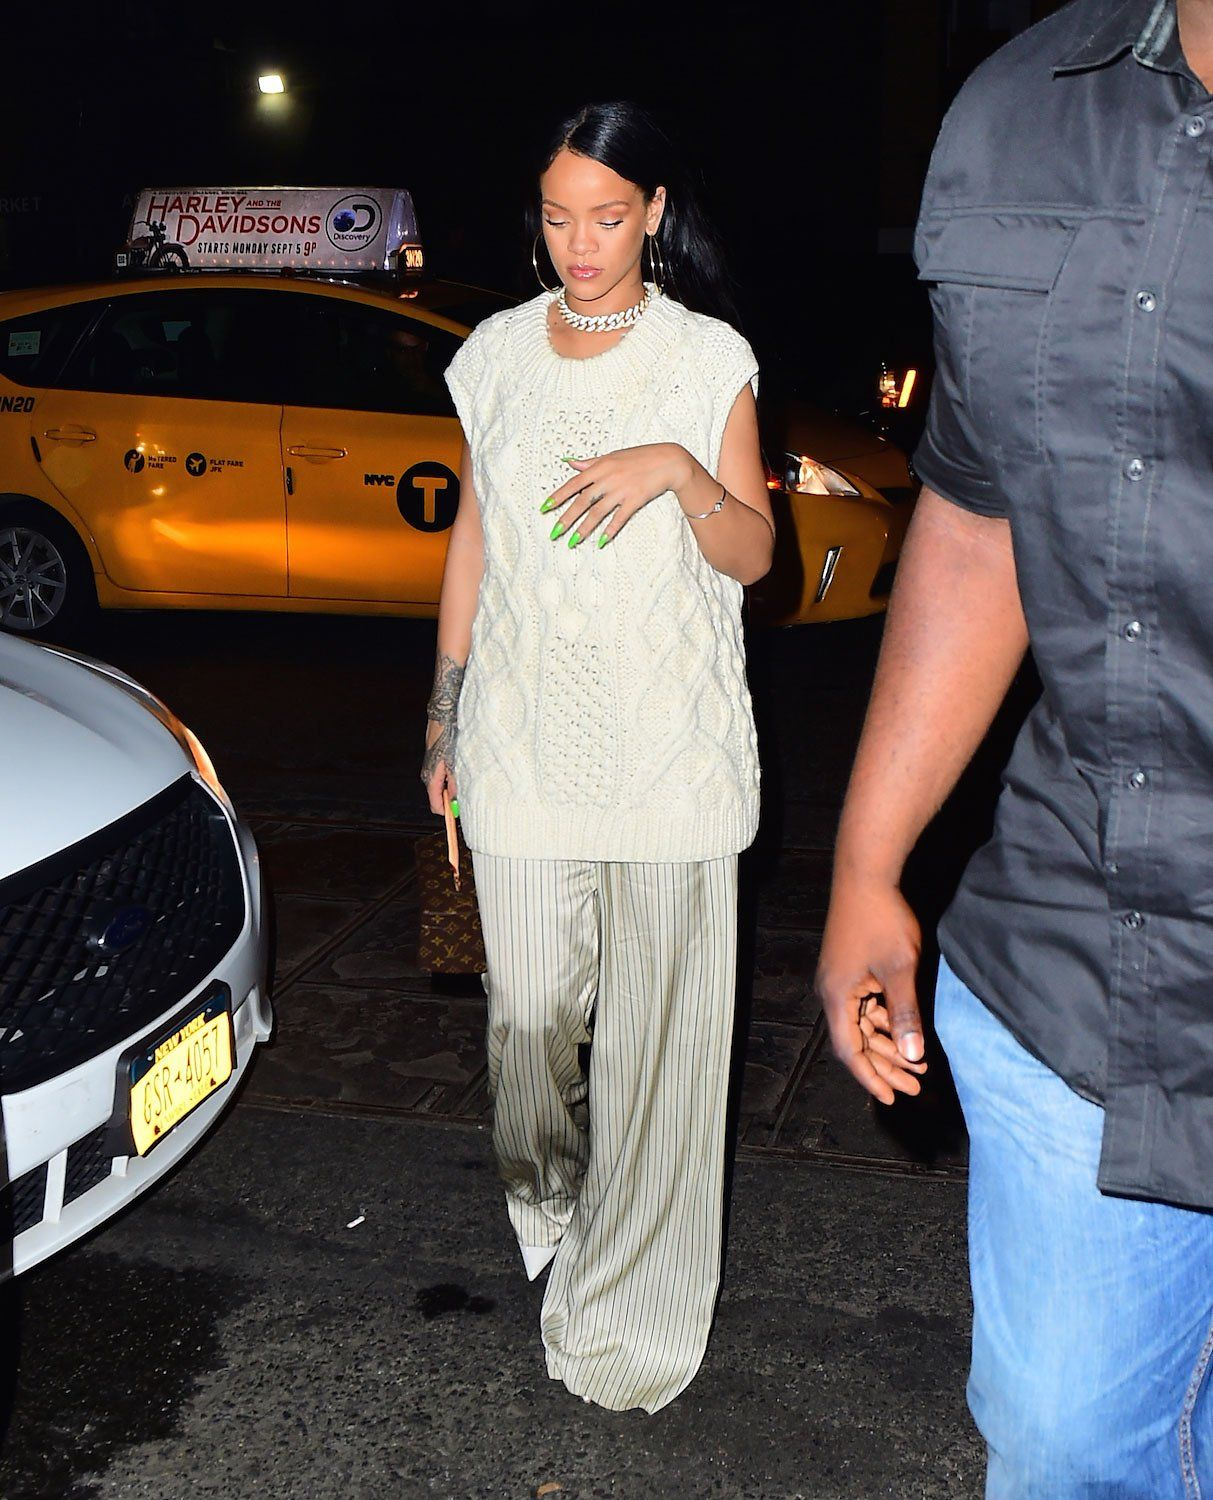 Rihanna News And Photos: Rihanna Does Laid-Back Party Style In New York